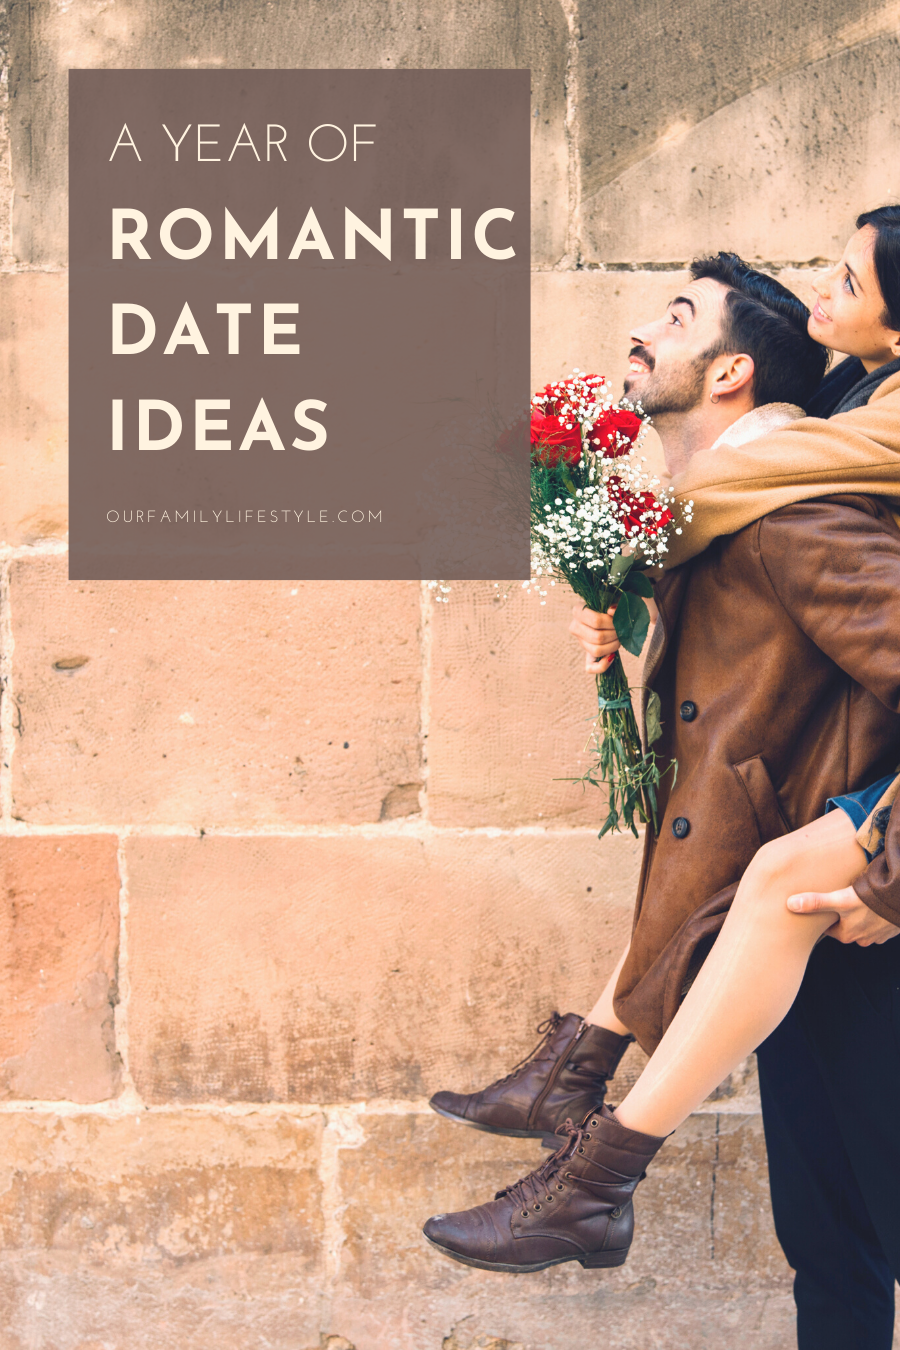 A Year of Romantic Date Ideas for Couples to Reconnect